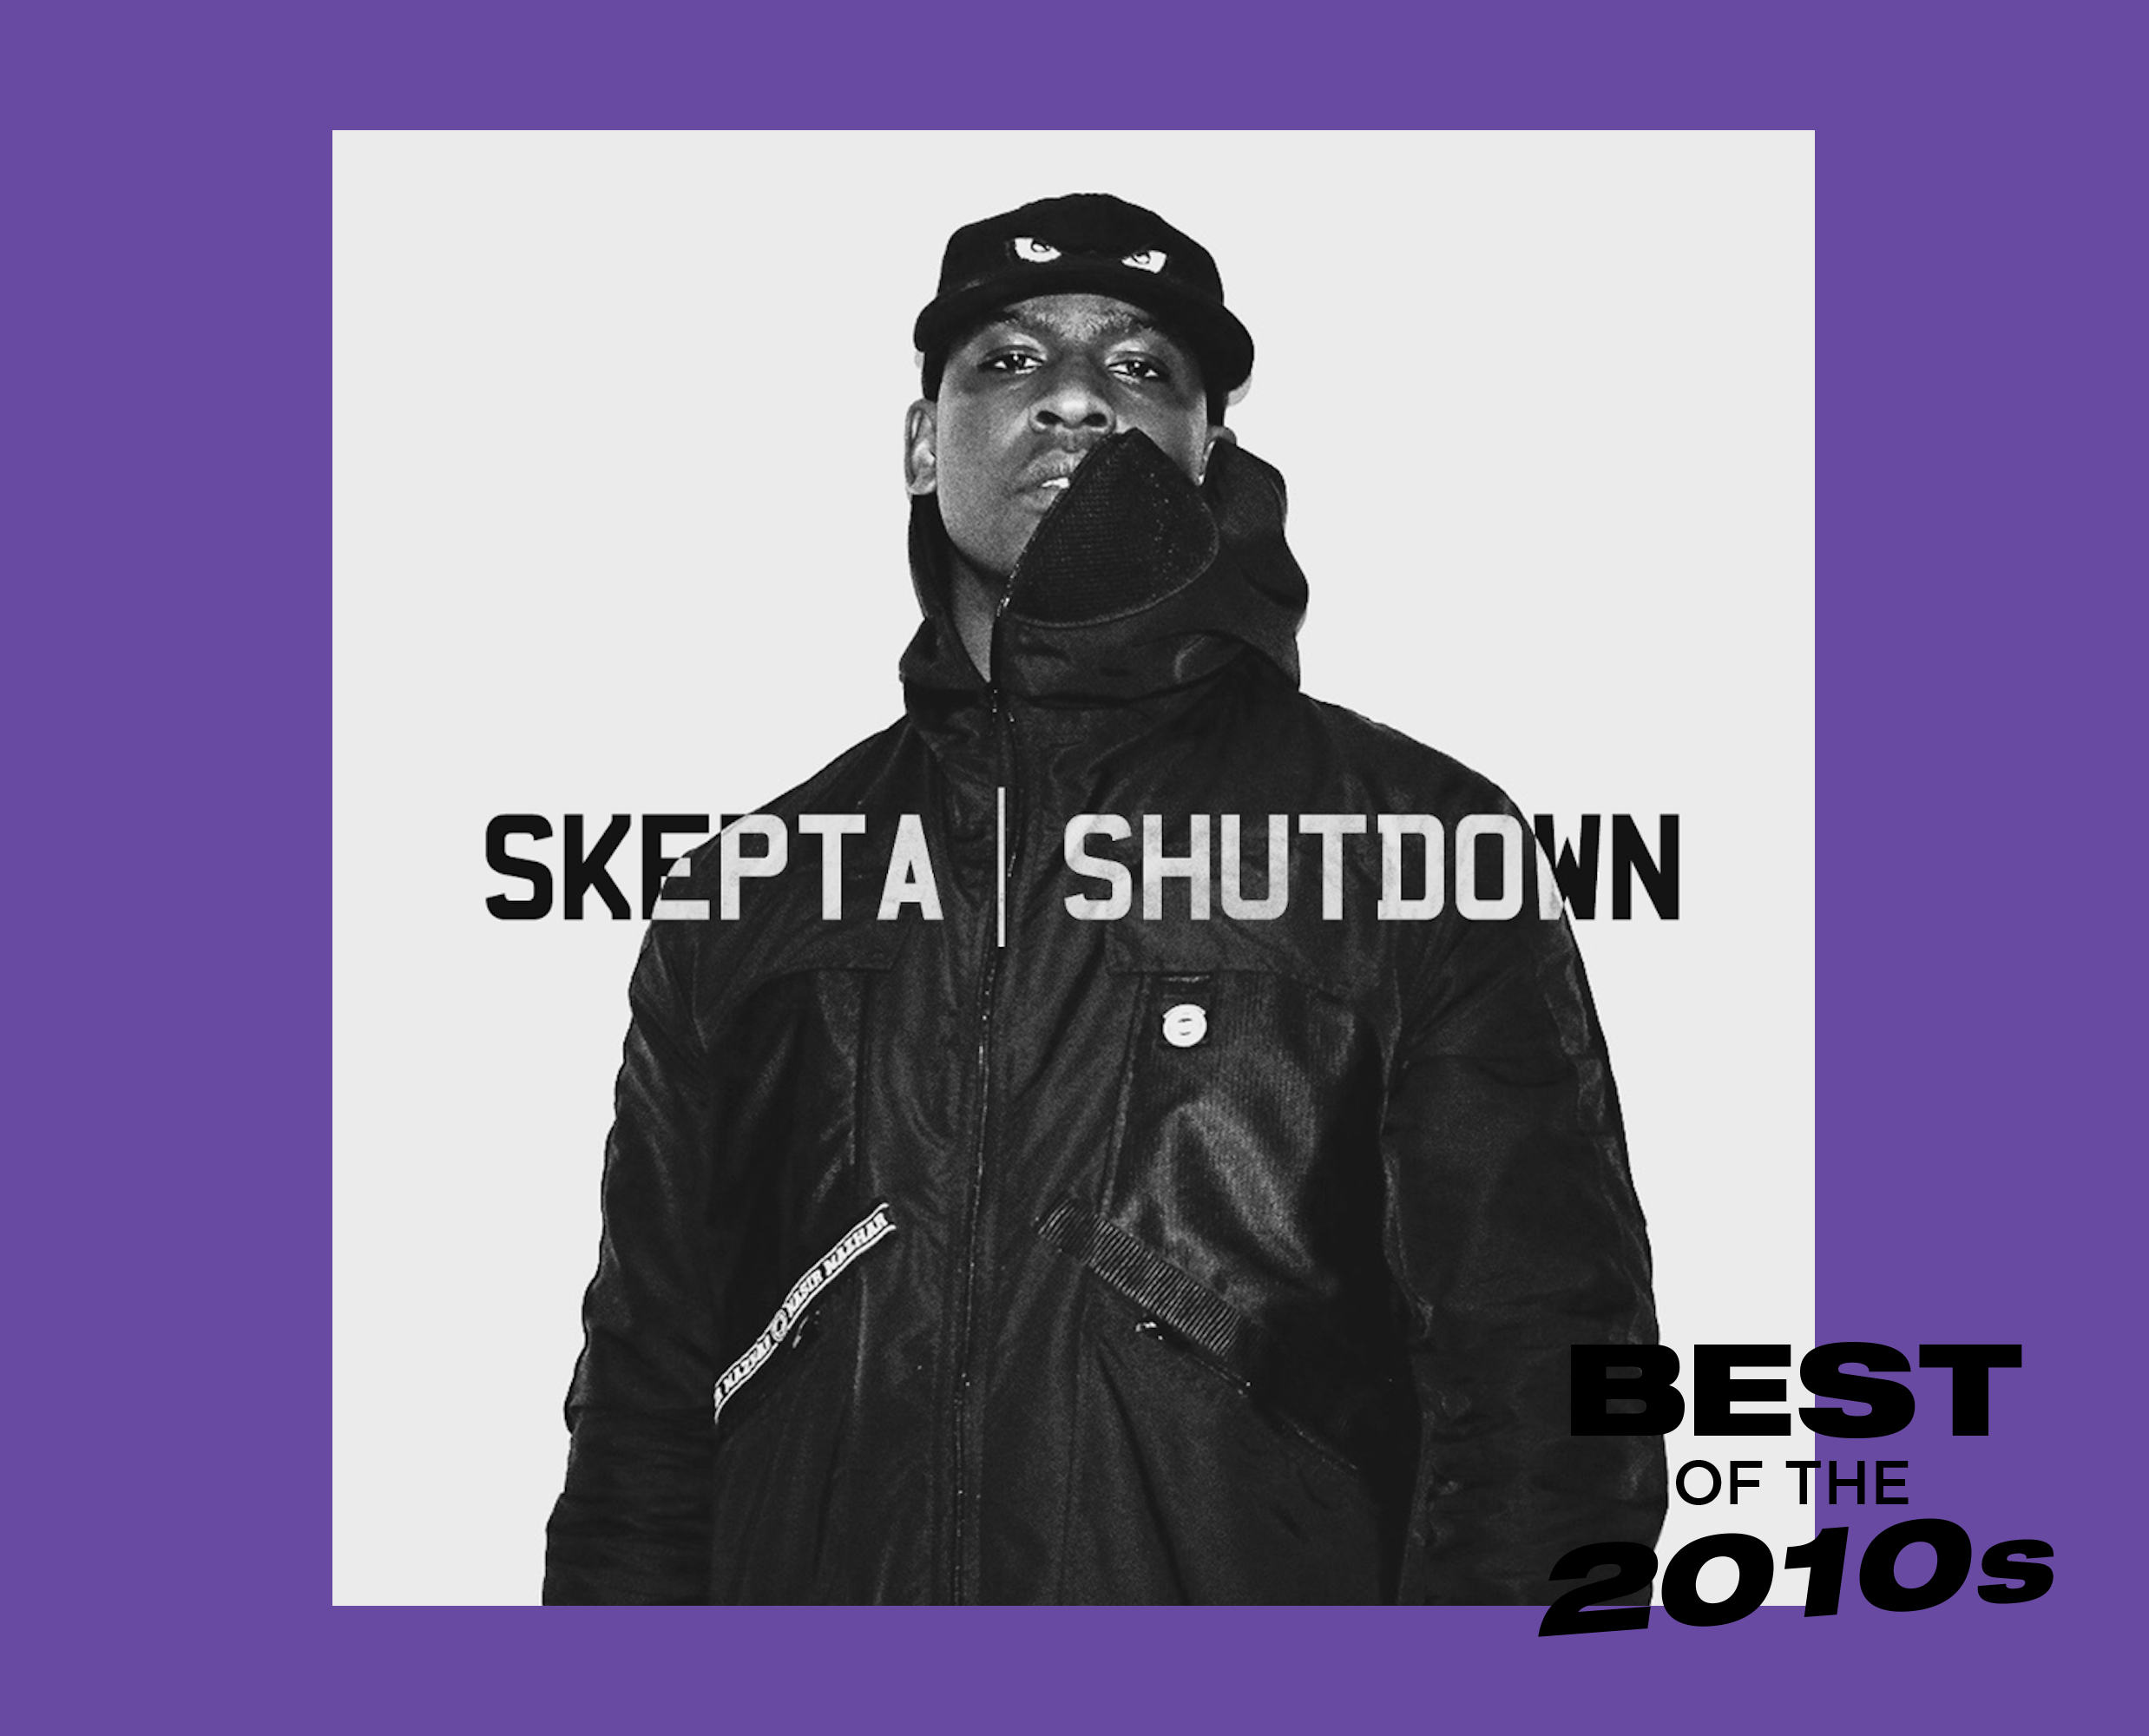 Skepta Shutdown artwork